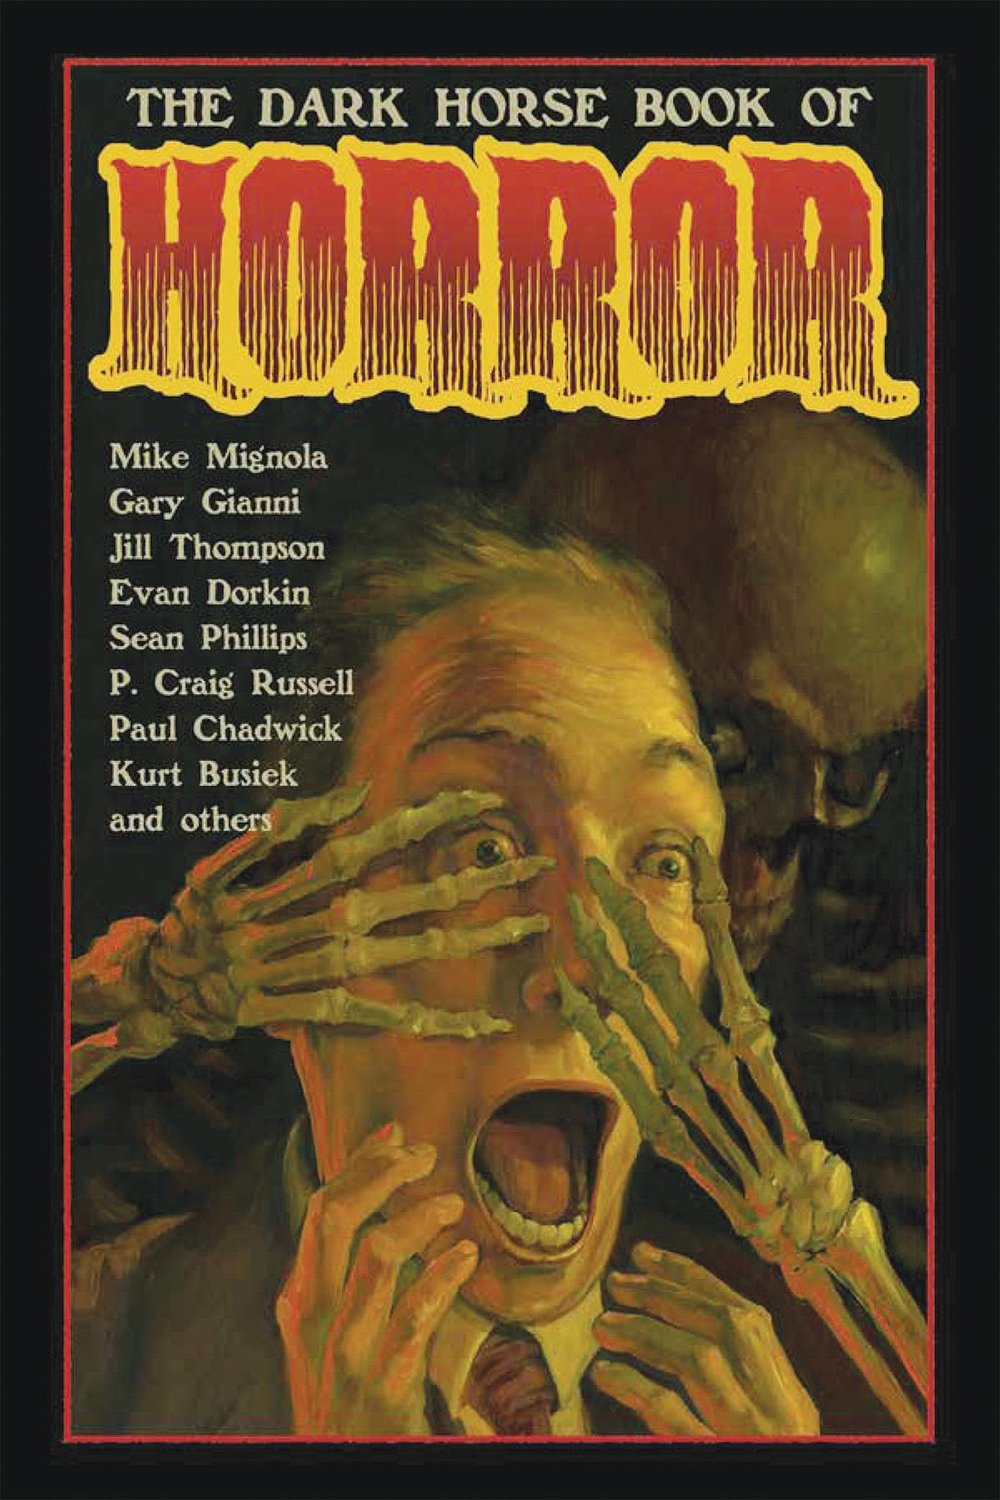 DARK HORSE BOOK OF HORROR HC.jpg